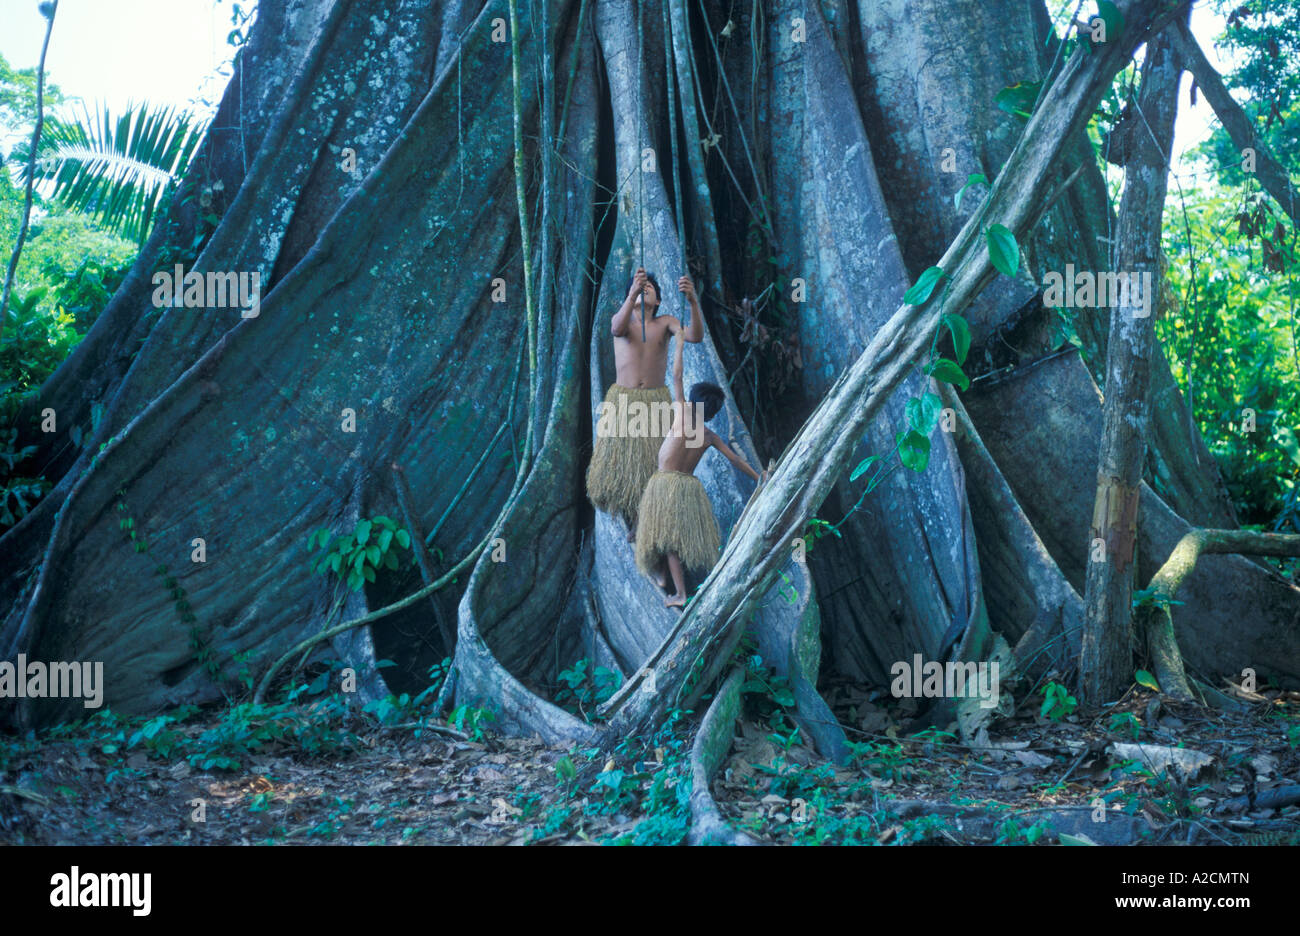 boys from a Yagua Tribe living near Iquitos using the lianas of a giant tree as swings - Stock Image